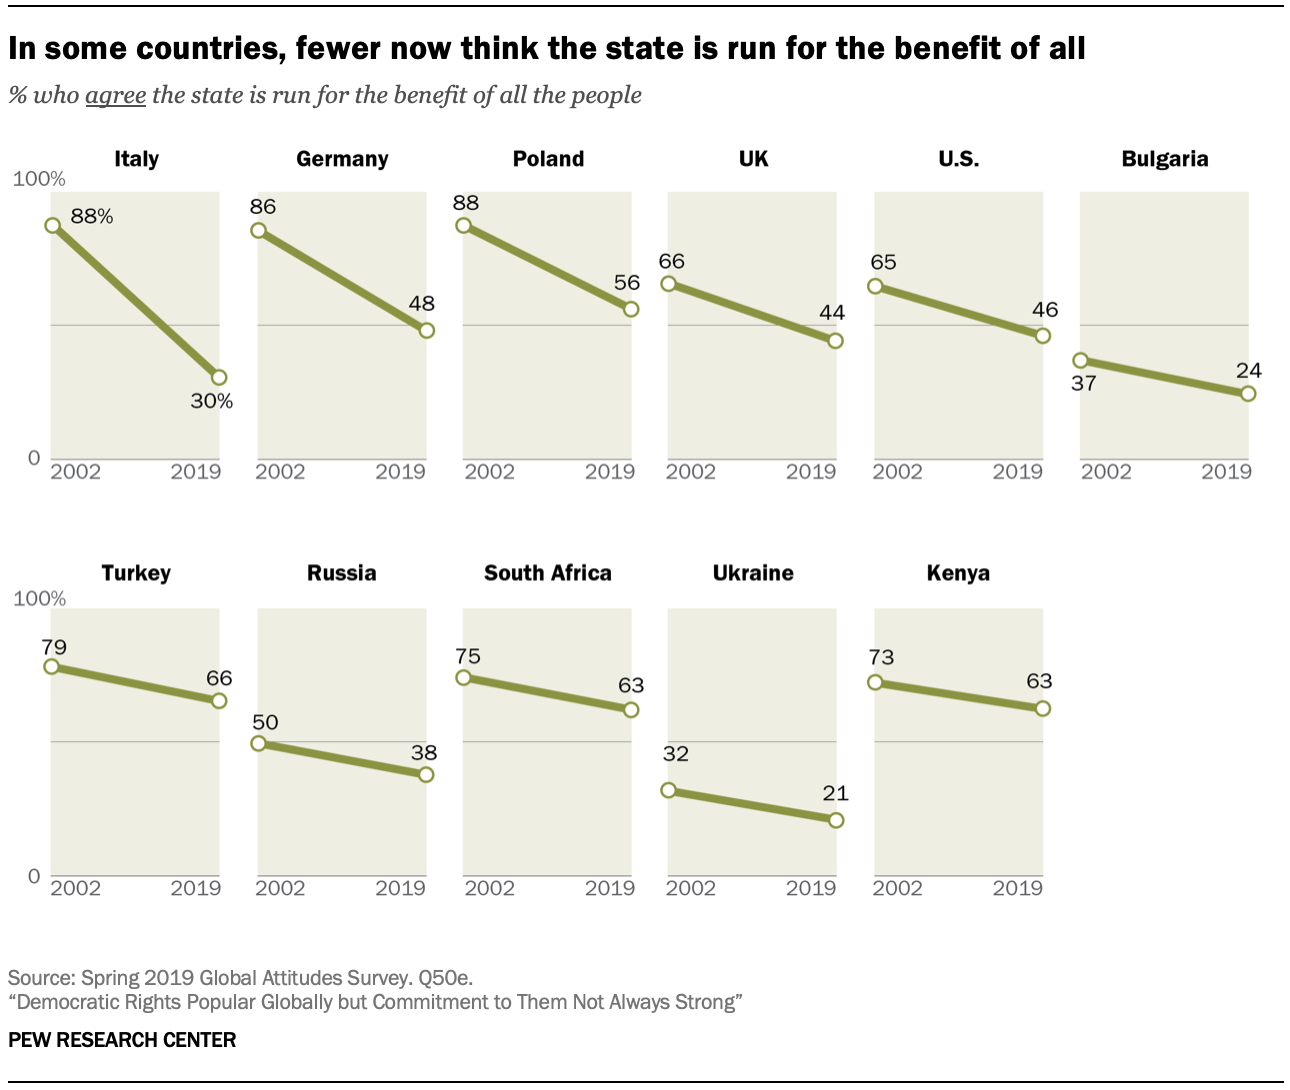 In some countries, fewer now think the state is run for the benefit of all